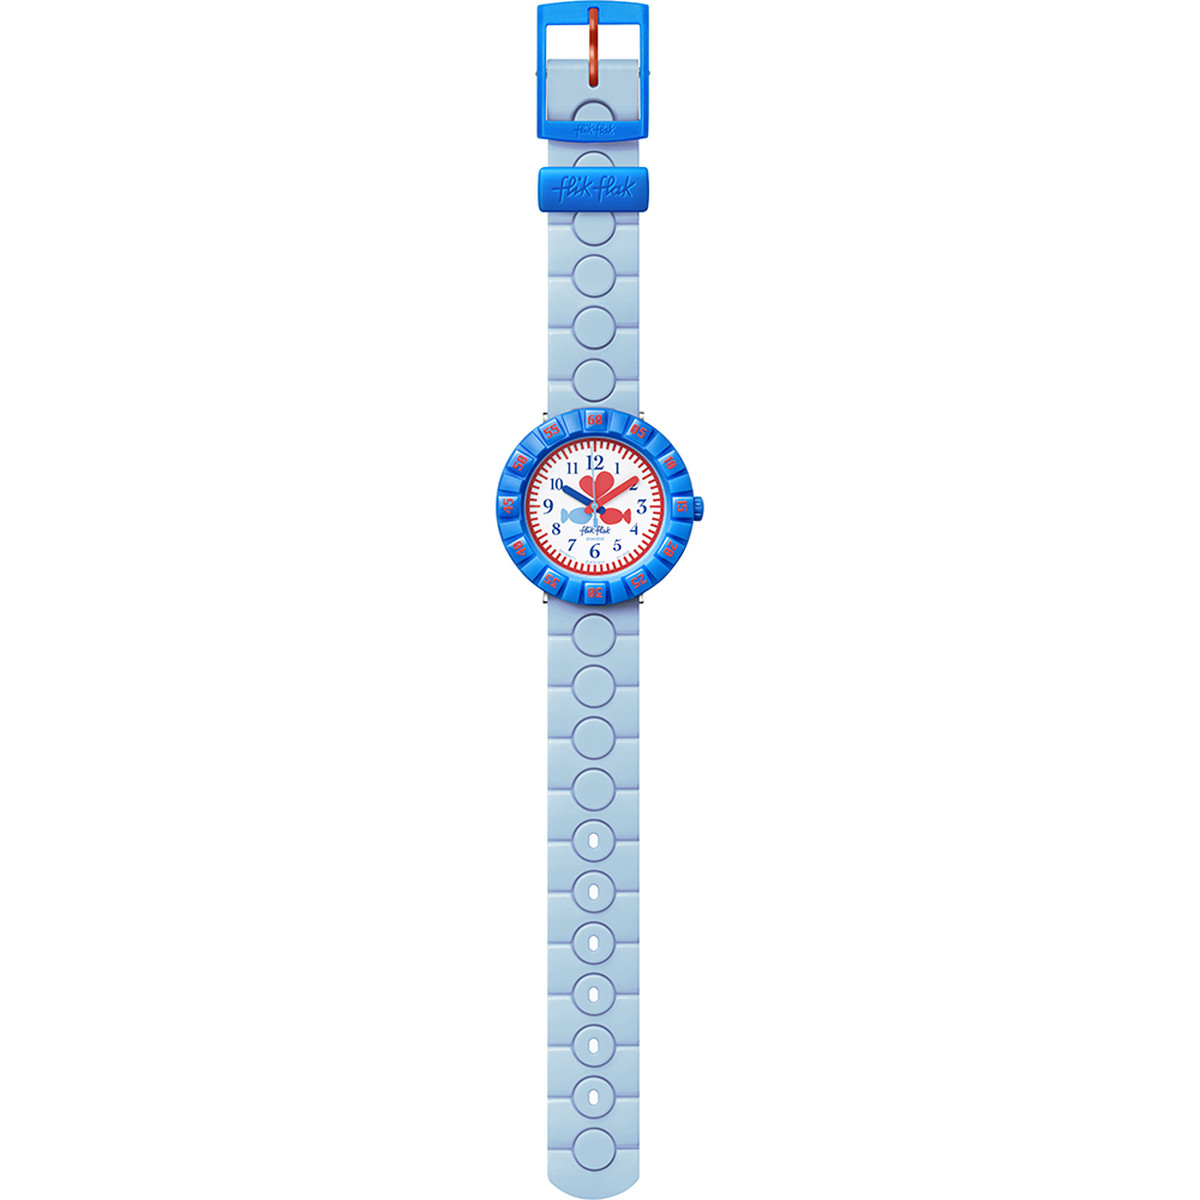 Montre Flik Flak Fish in love enfant plastique - vue D1